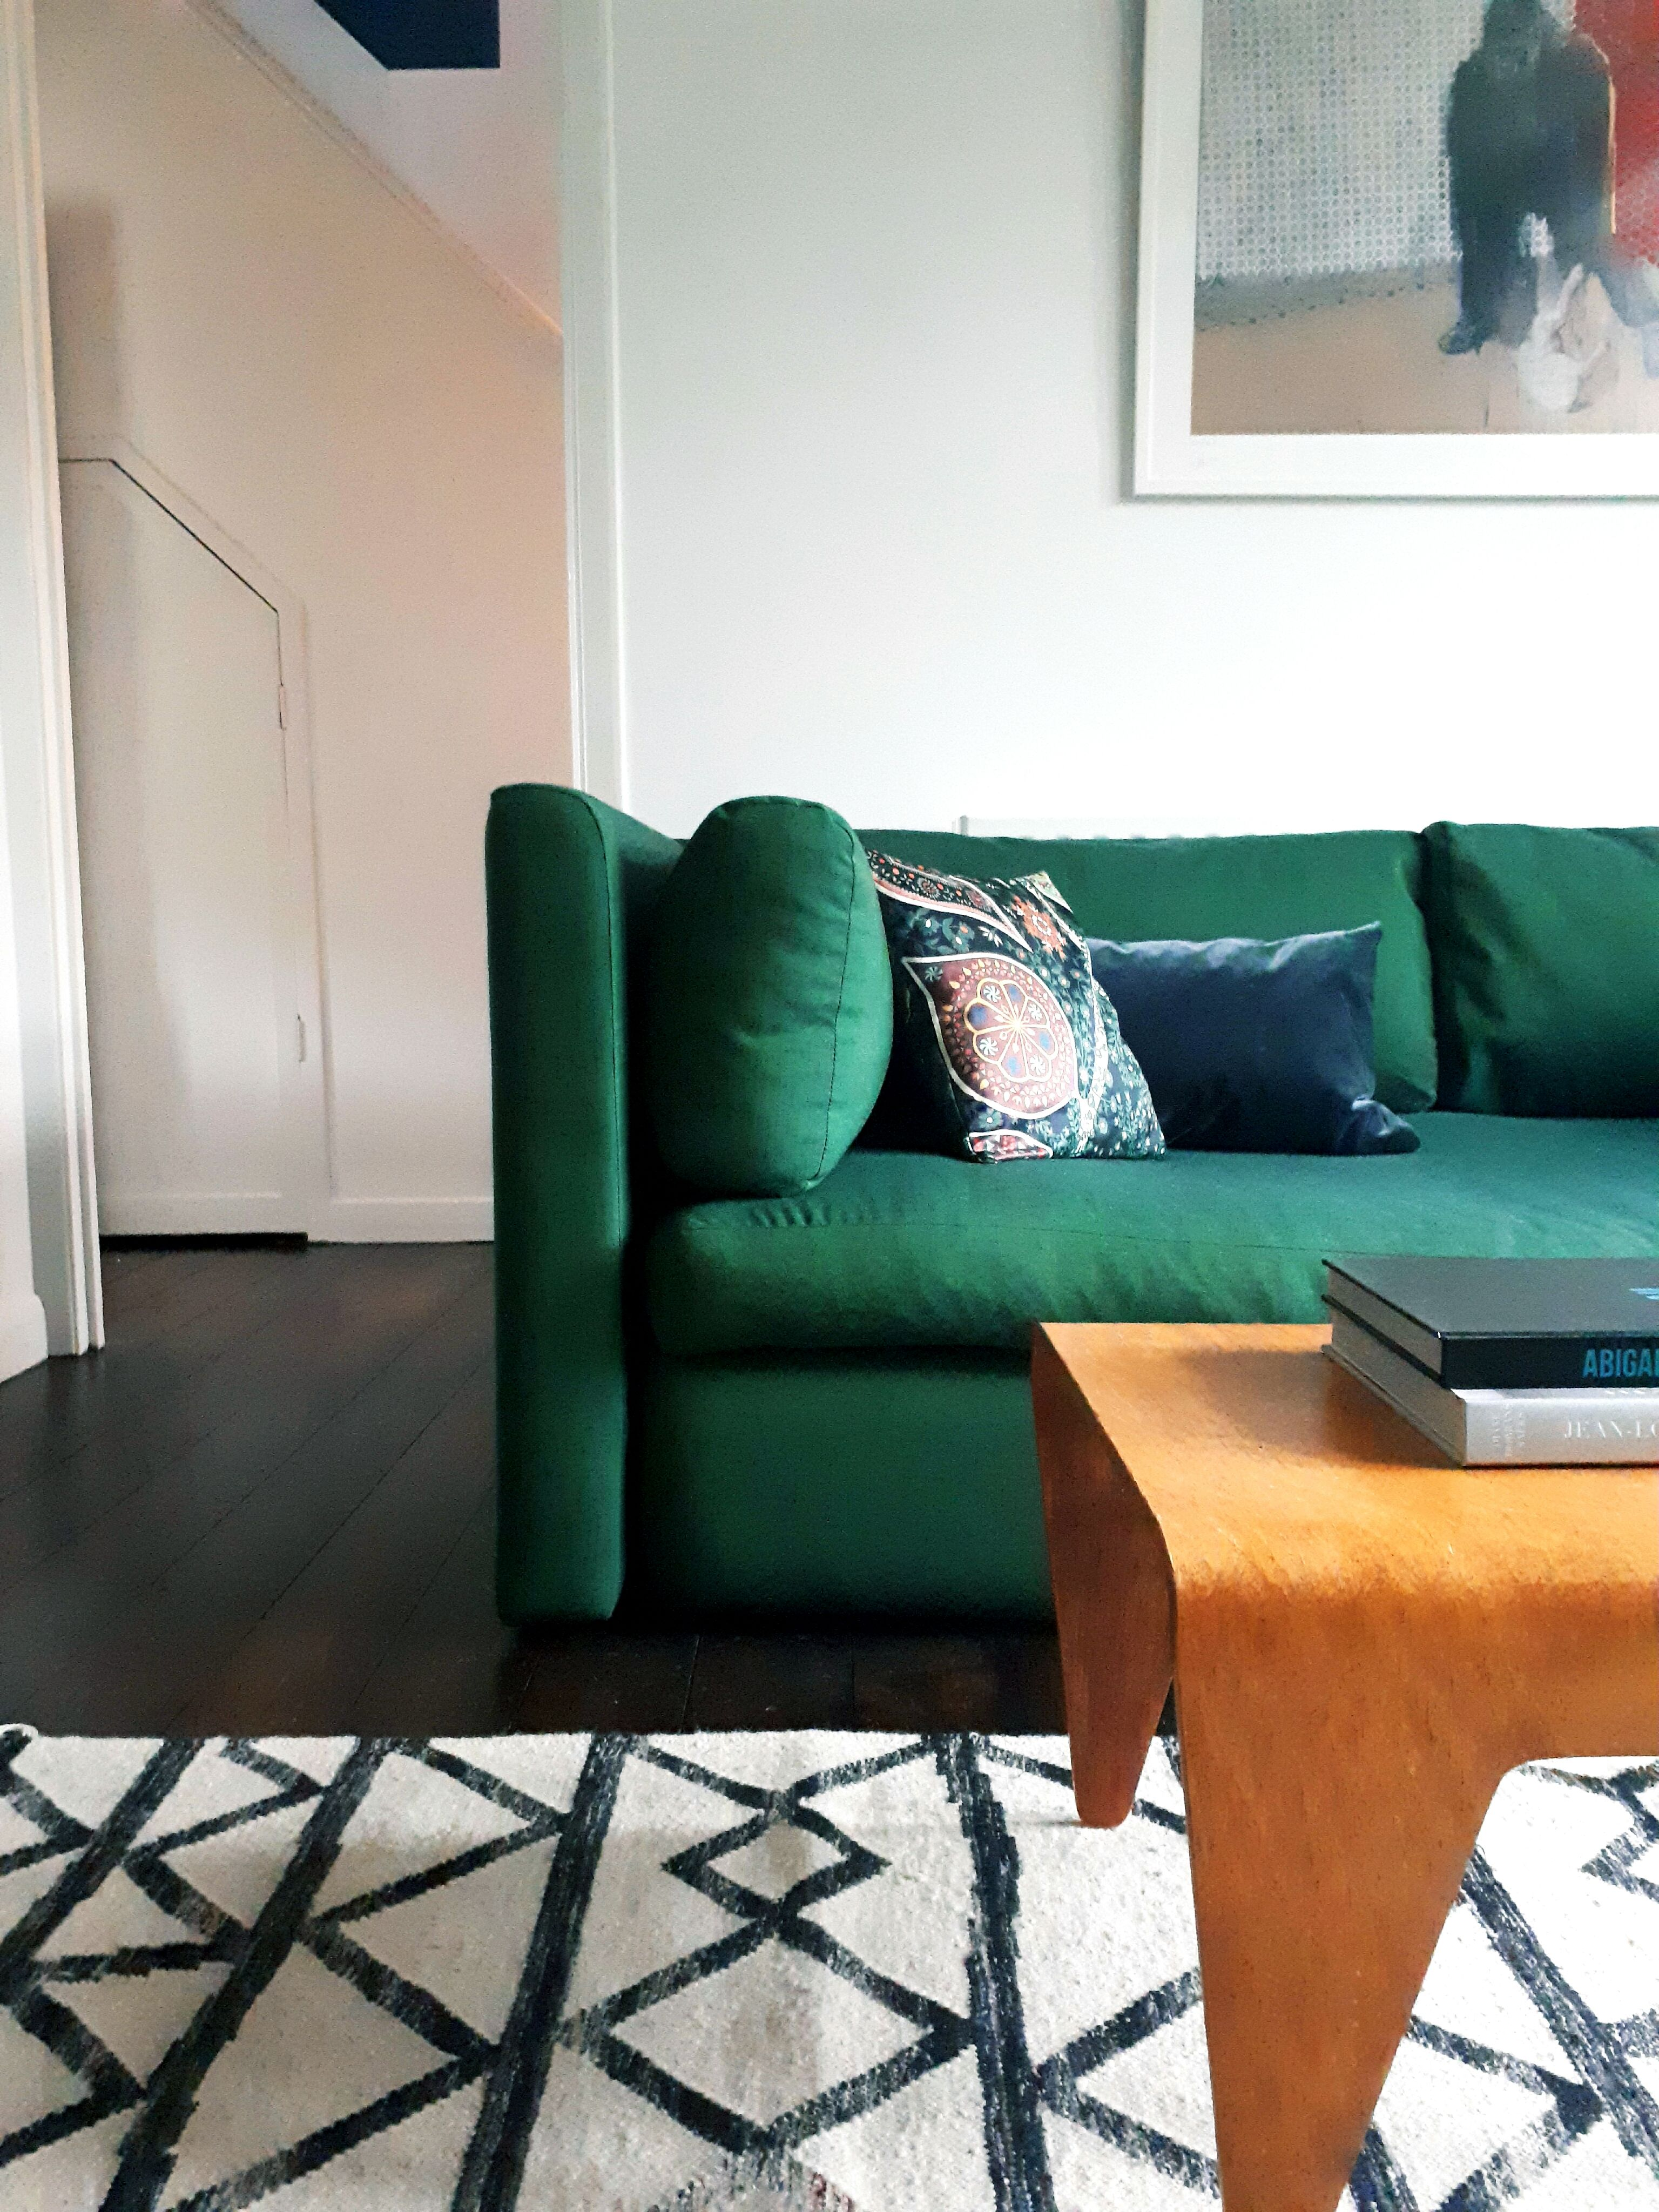 Hay Sofa Kvadrat Lowest Set Living Room Design Hackney In Remix Green Fabric And West Elm Torres Rug Interiors By Designers Residence London